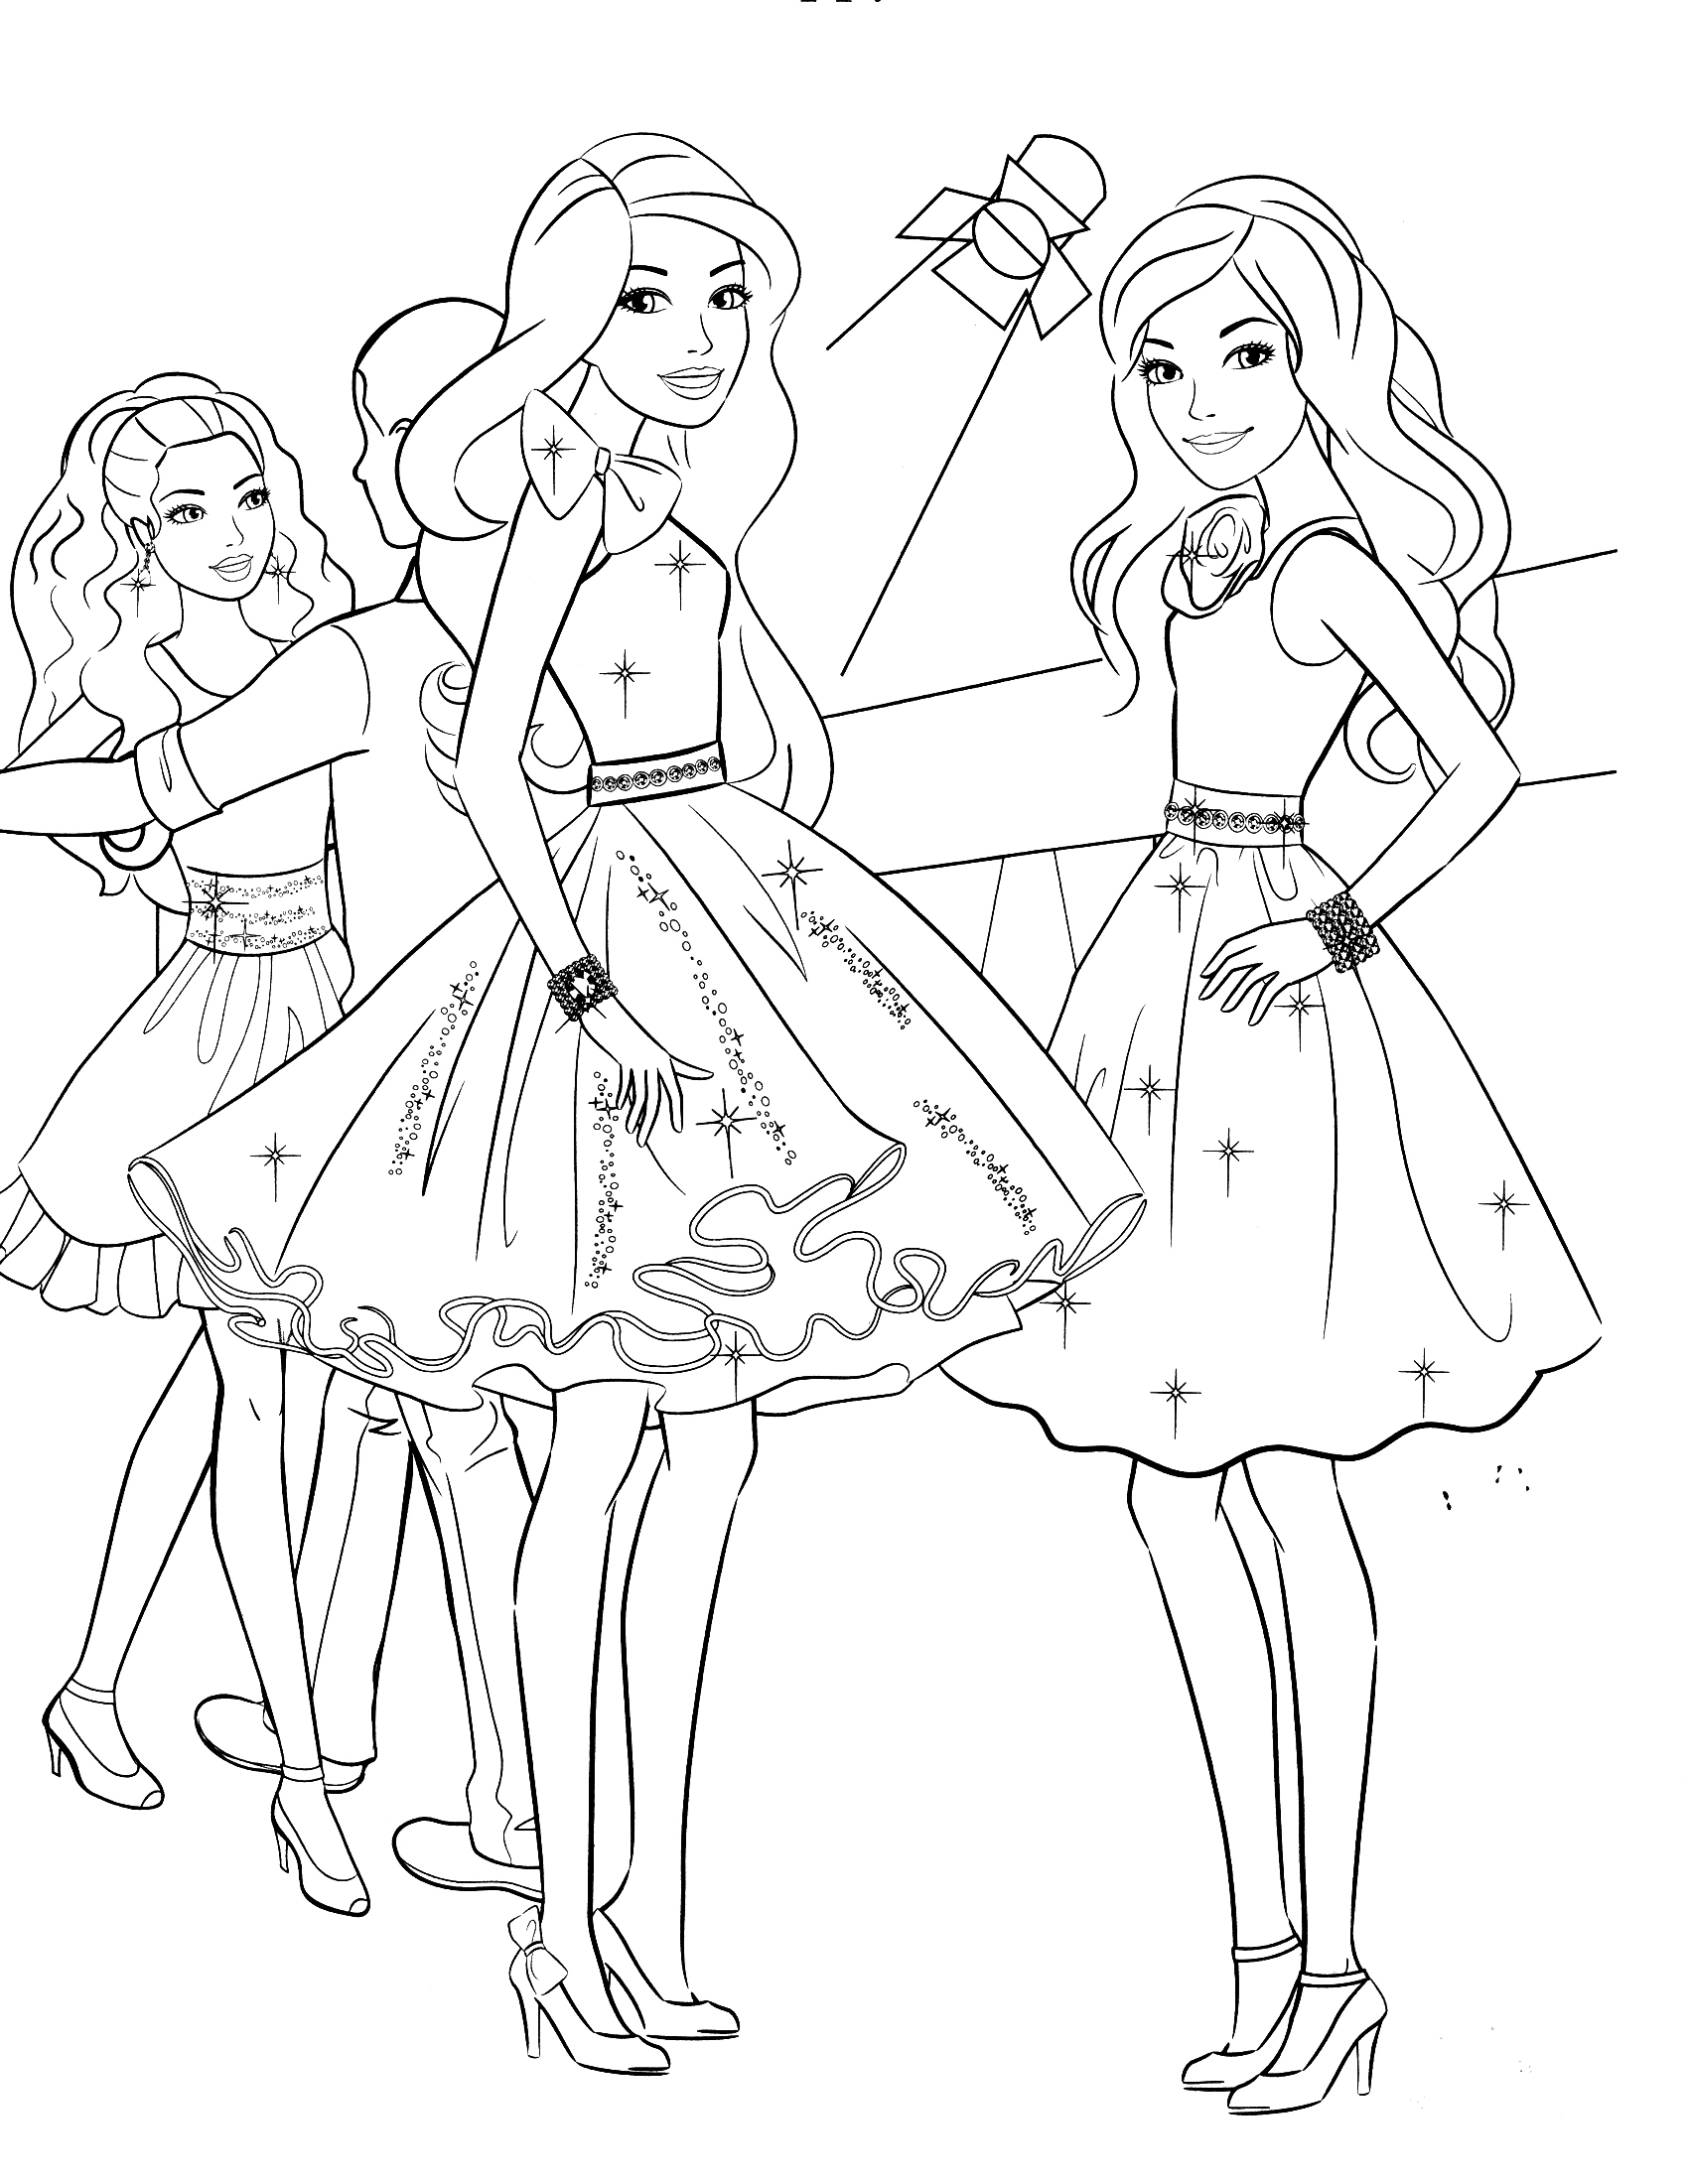 colouring in pictures for girls 40 barbie coloring pages for kids pictures in colouring for girls